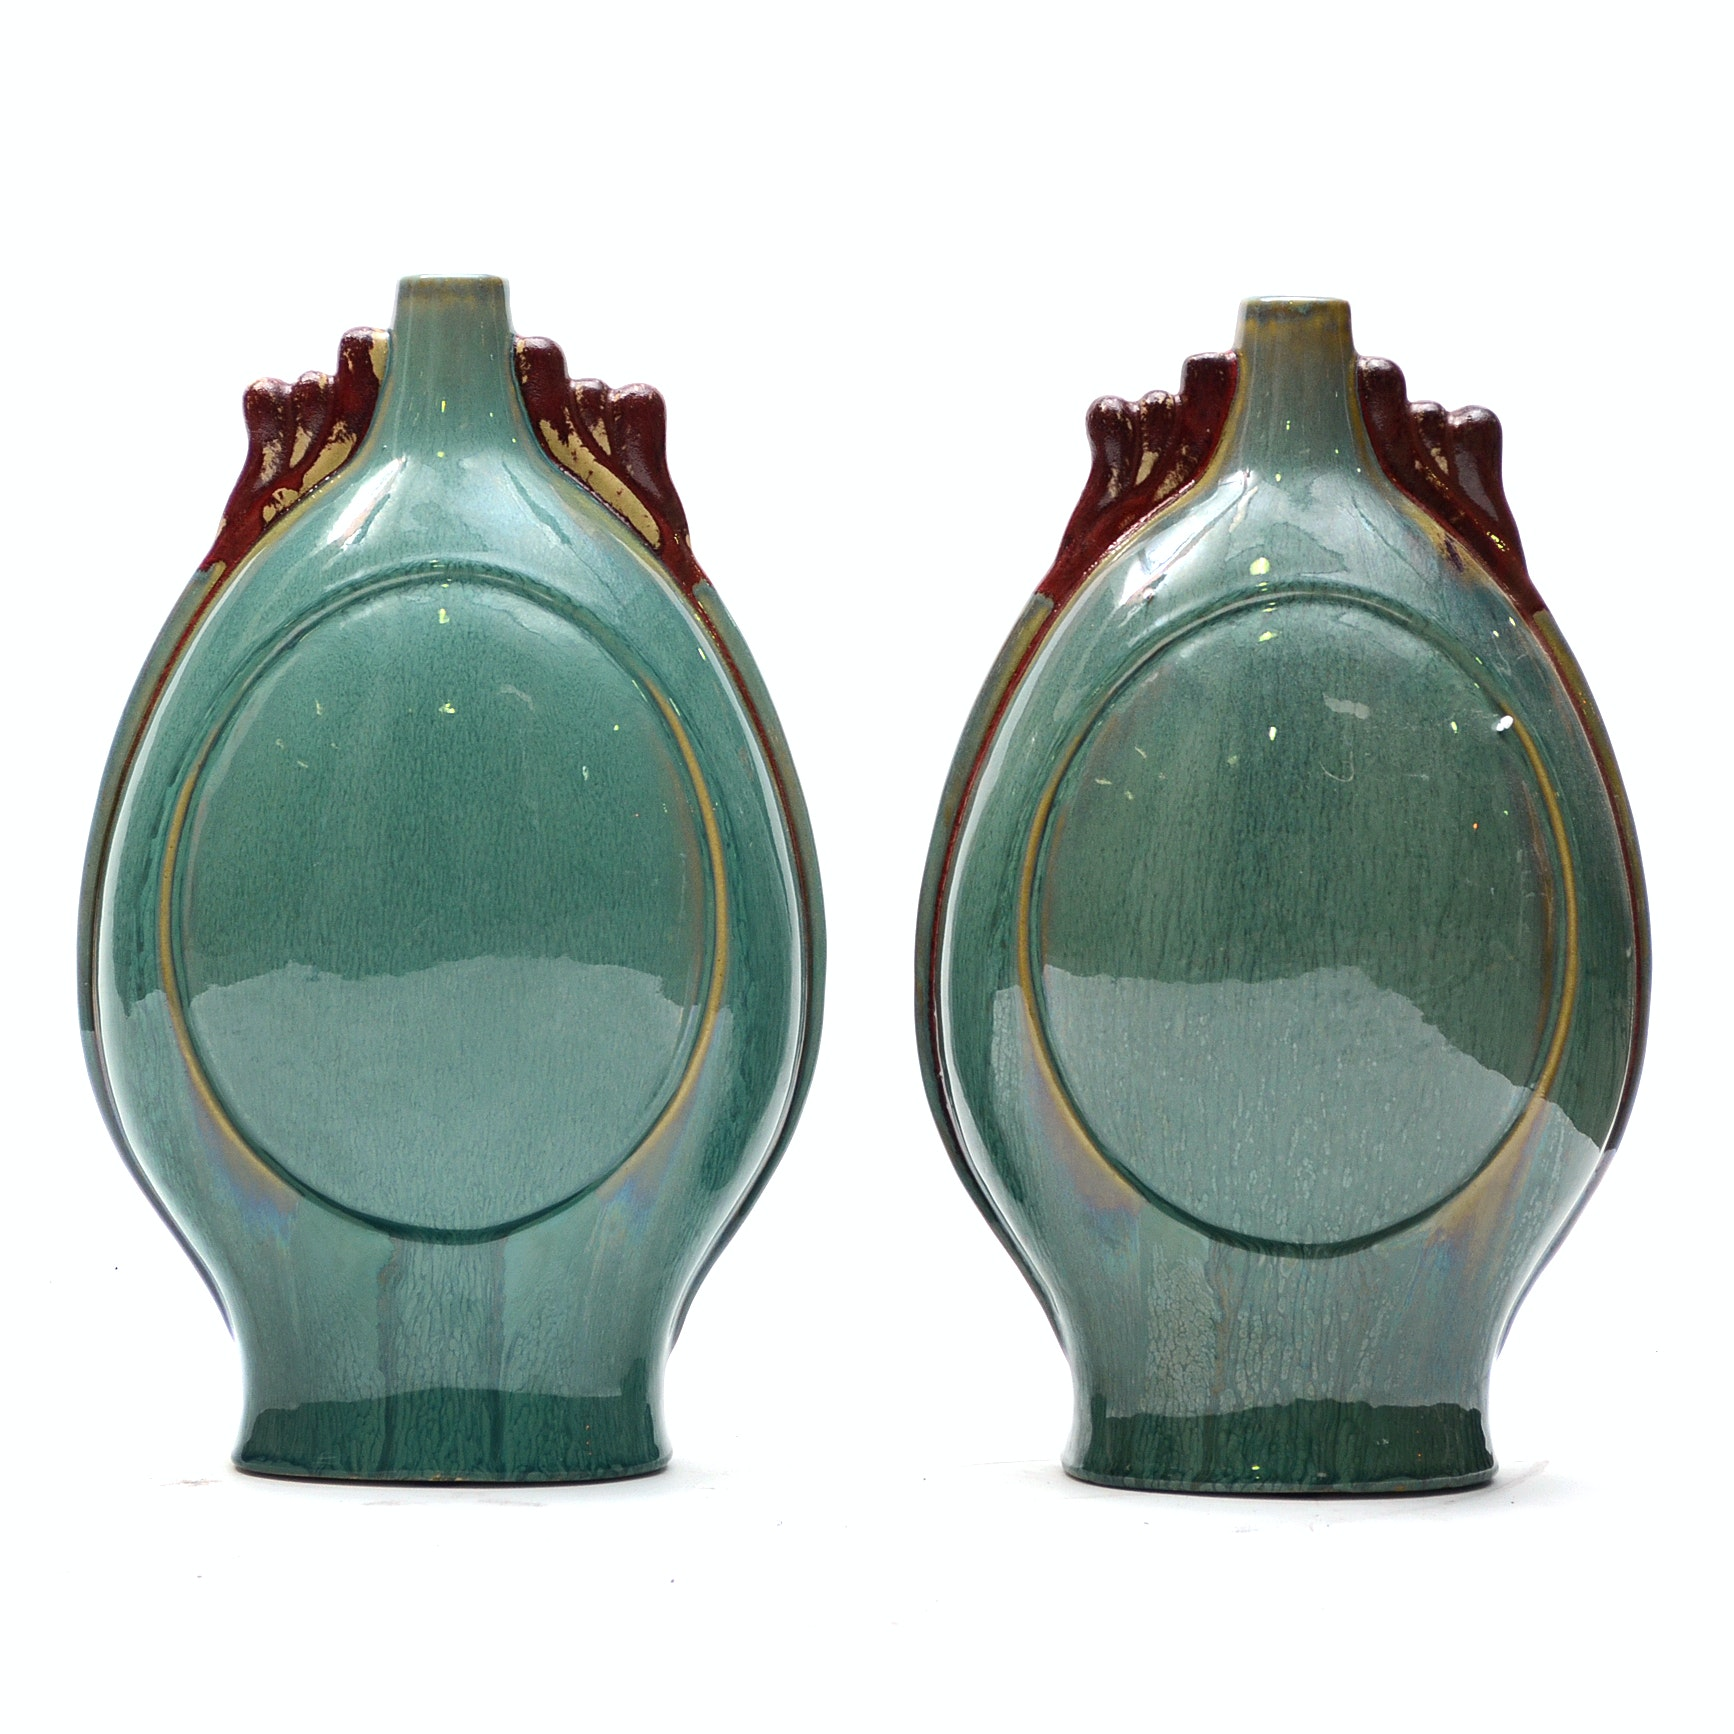 Pair of Chinese Heavy Glaze Ceramic Vases